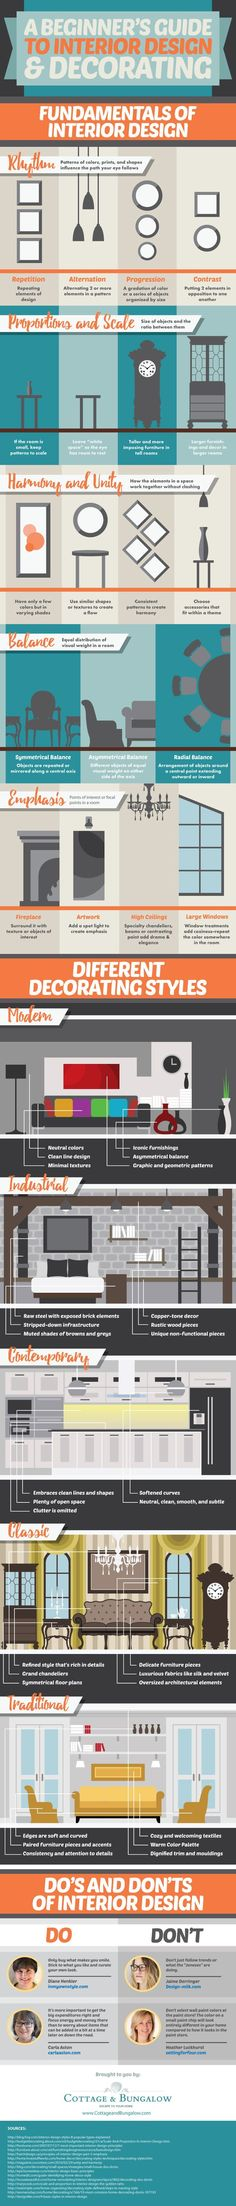 A Beginner's Guide to Interior Design and Decorating #Infographic #HomeImprovement #InteriorDesign